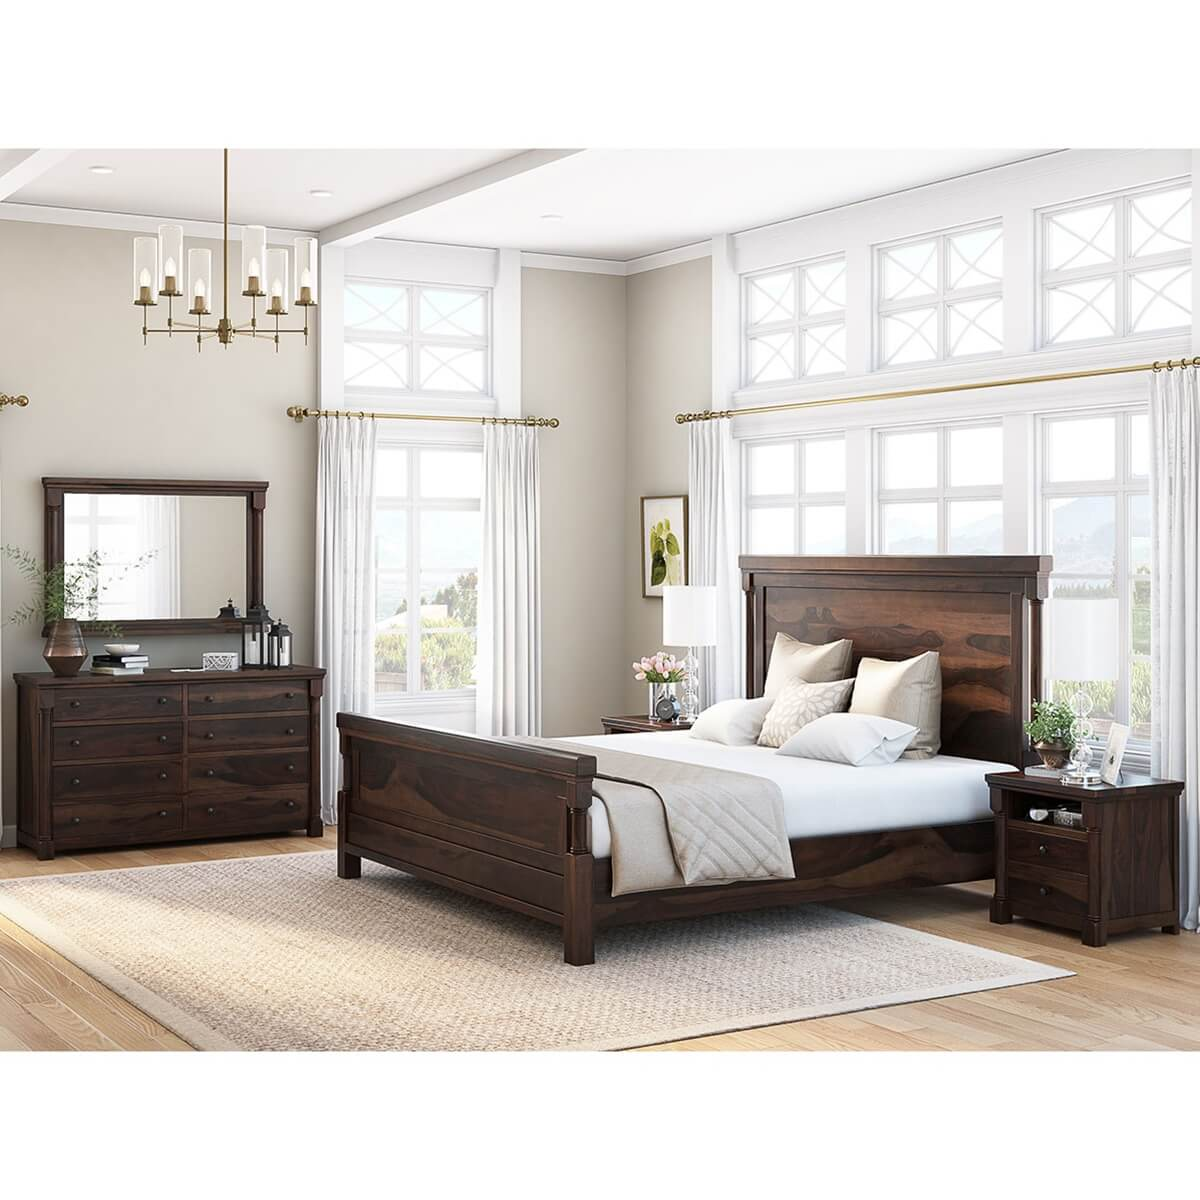 Transitional Bedroom Furniture: Pioneer Transitional 7 Piece Bedroom Collection